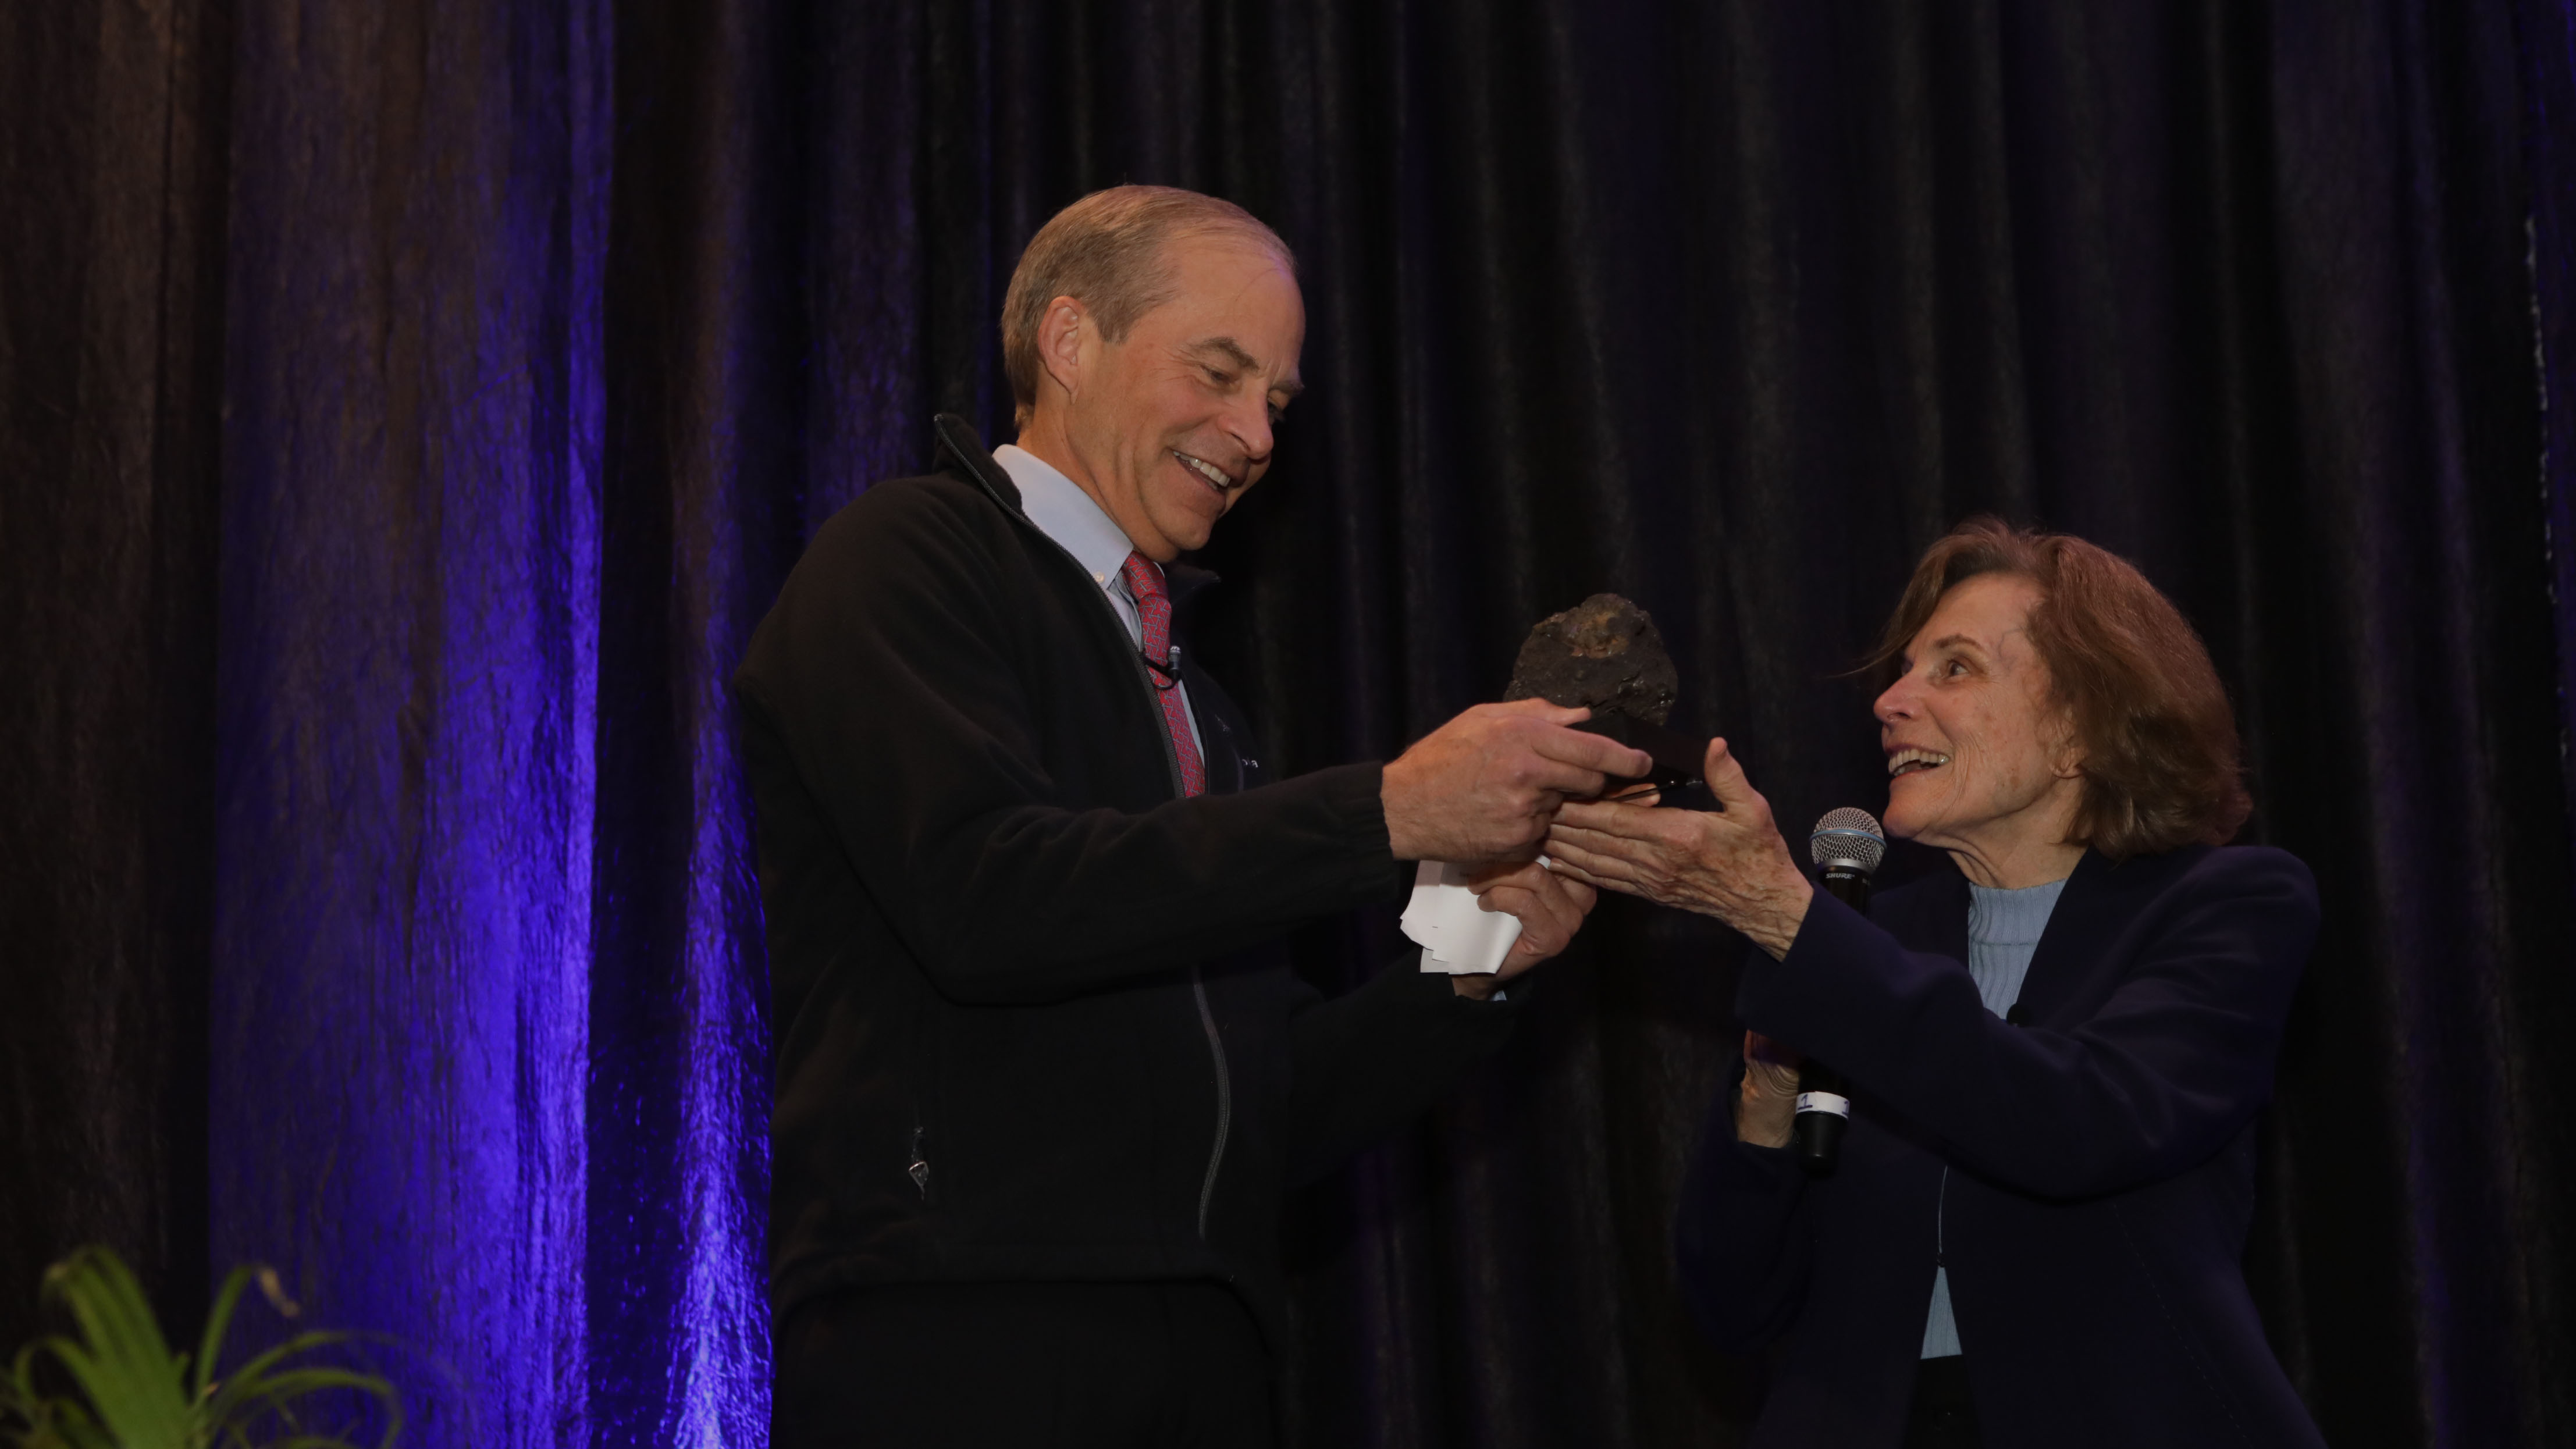 Fisk Johnson receiving the Sylvia Earle Award